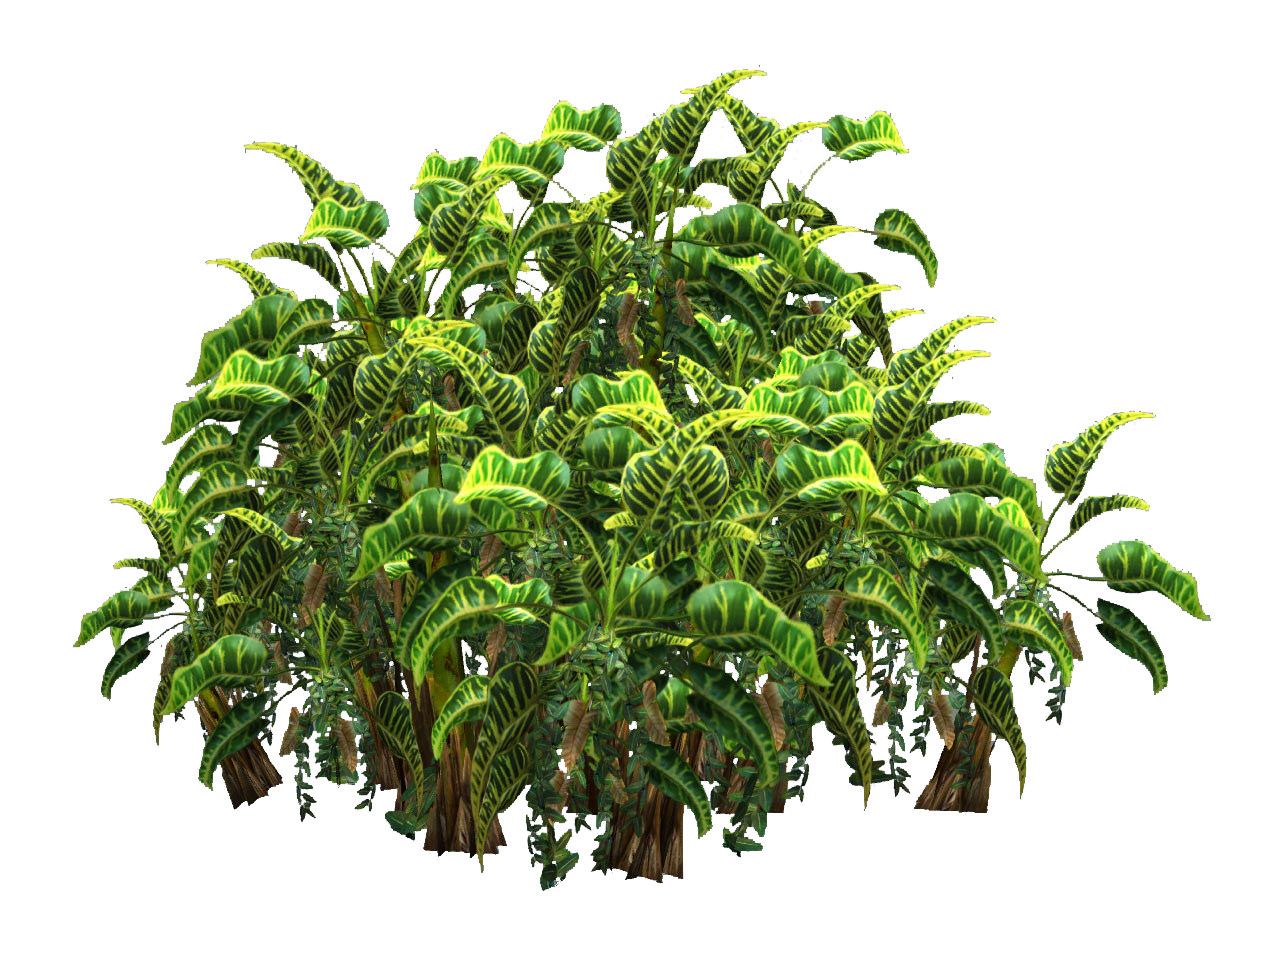 Plants Png Transparent Top View image #44921